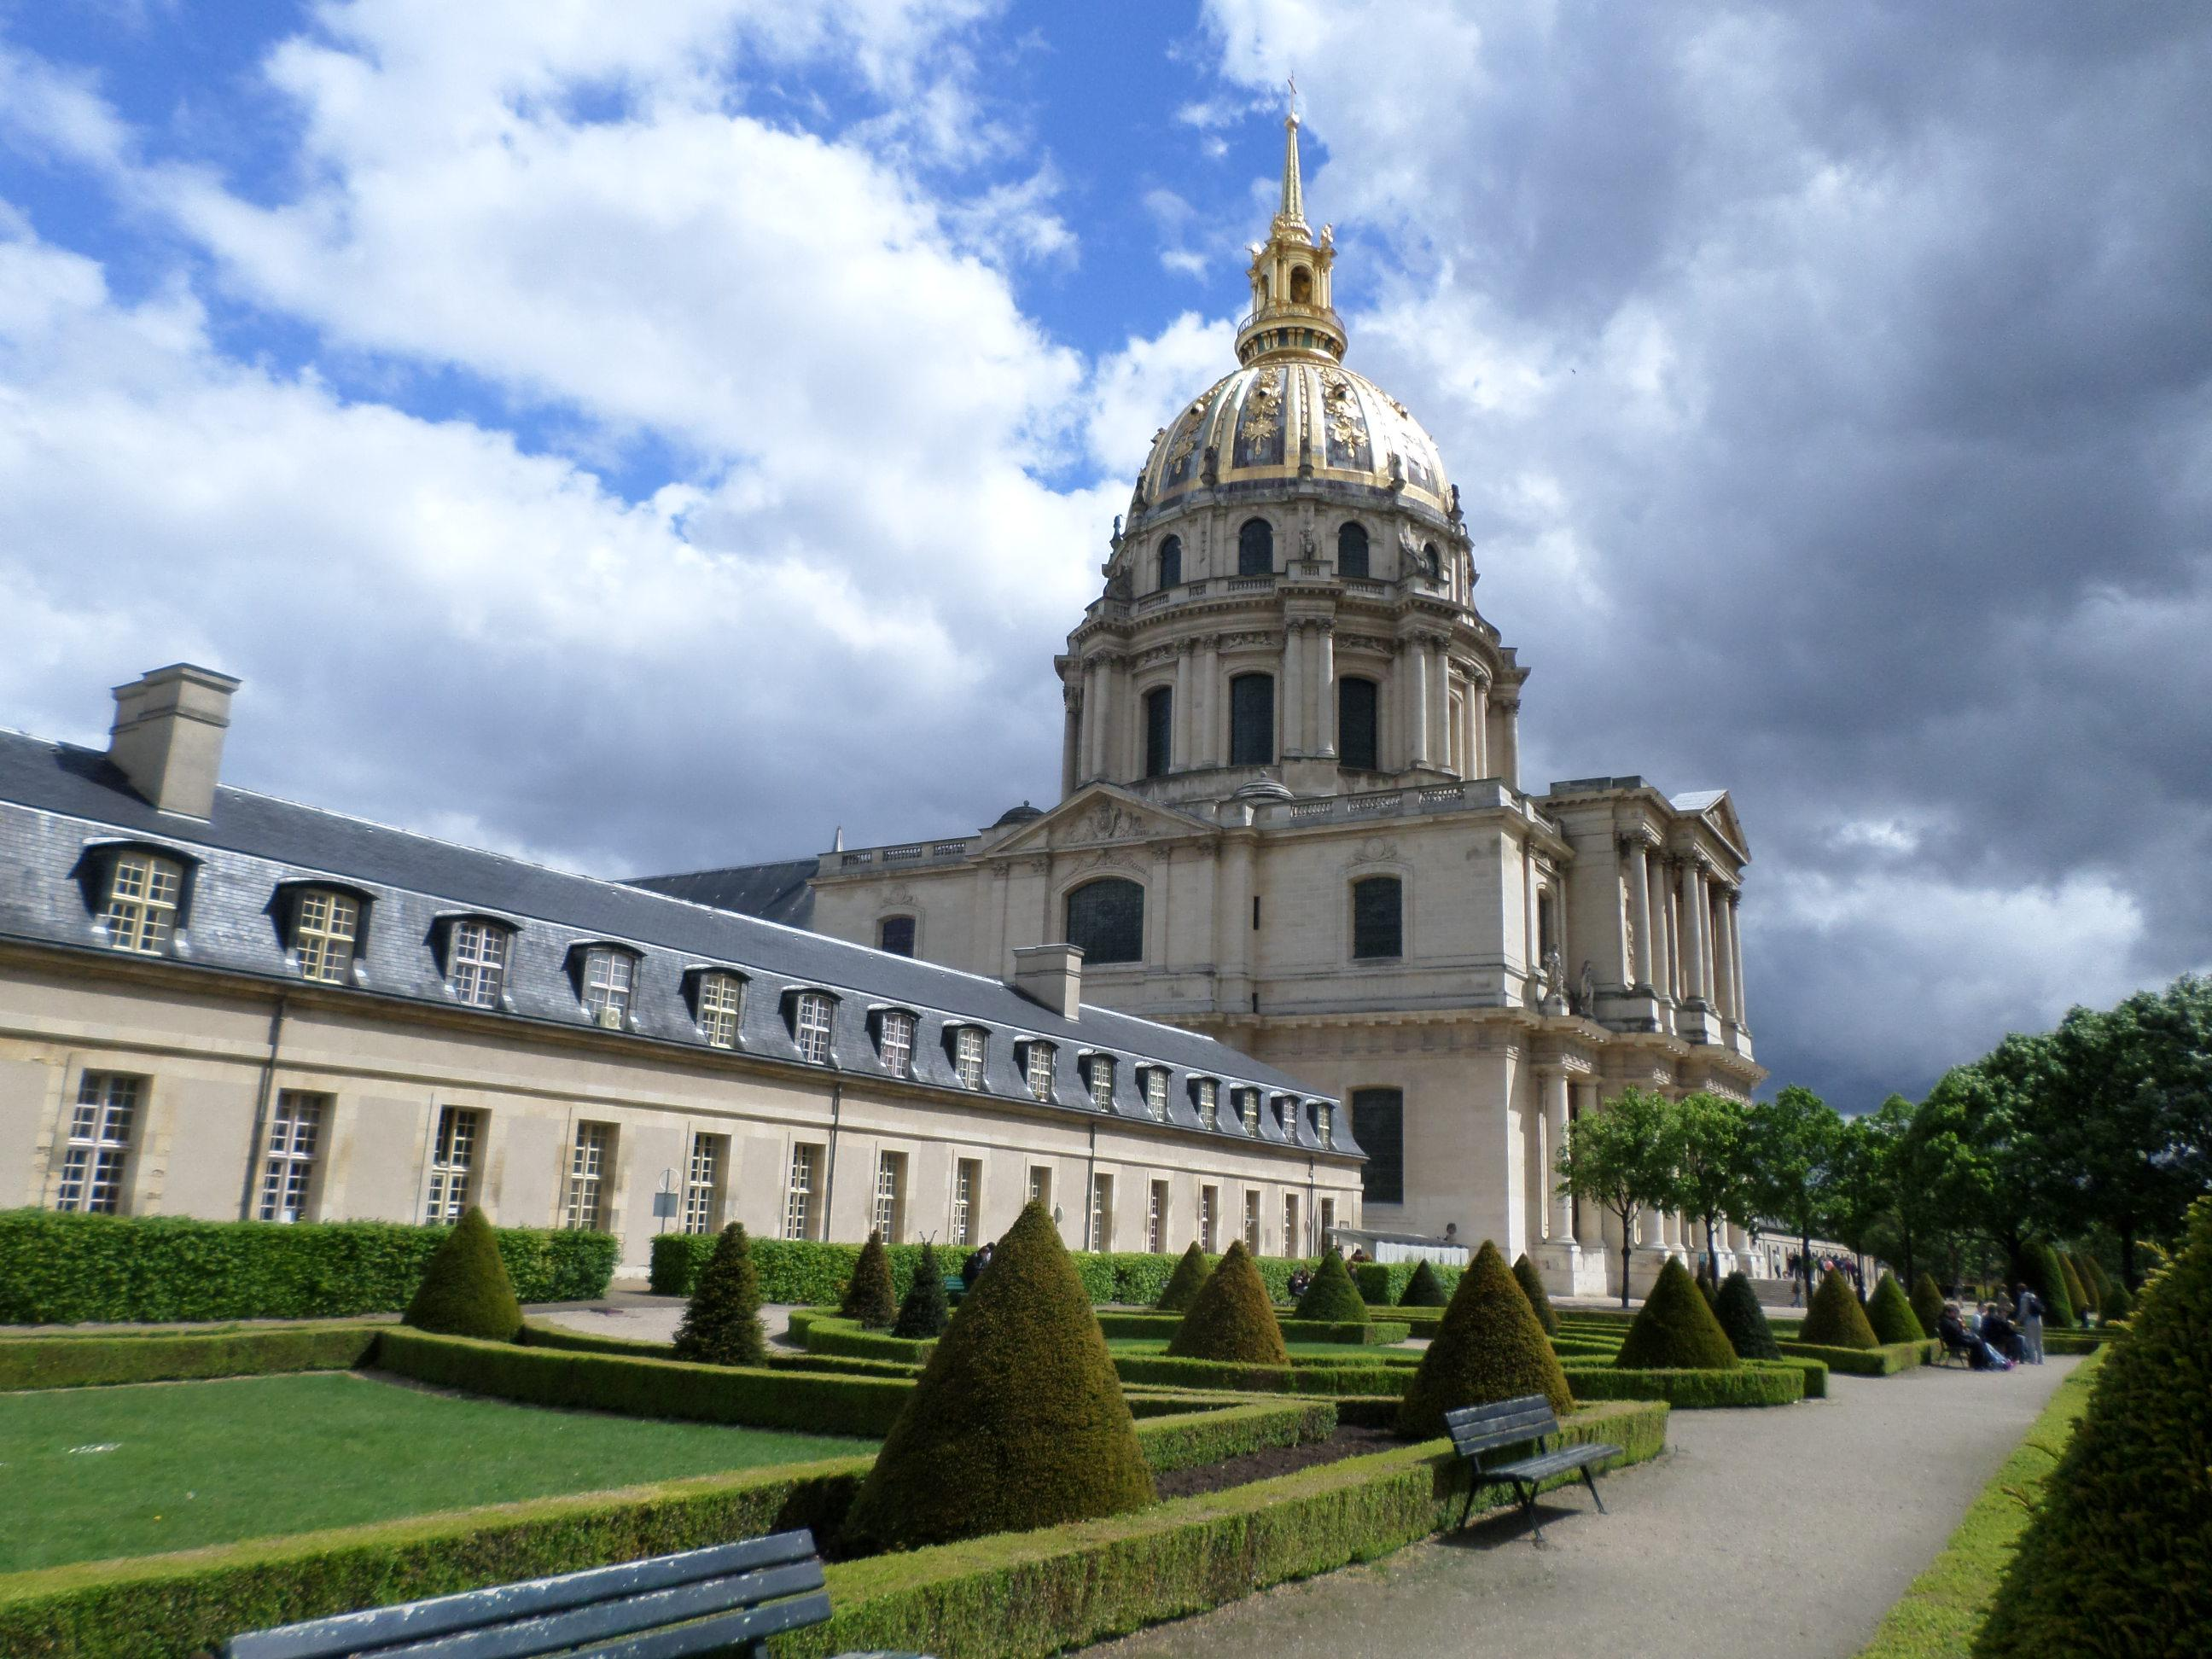 The gardens outside Napoleon's Tomb. The garden is open to the public.